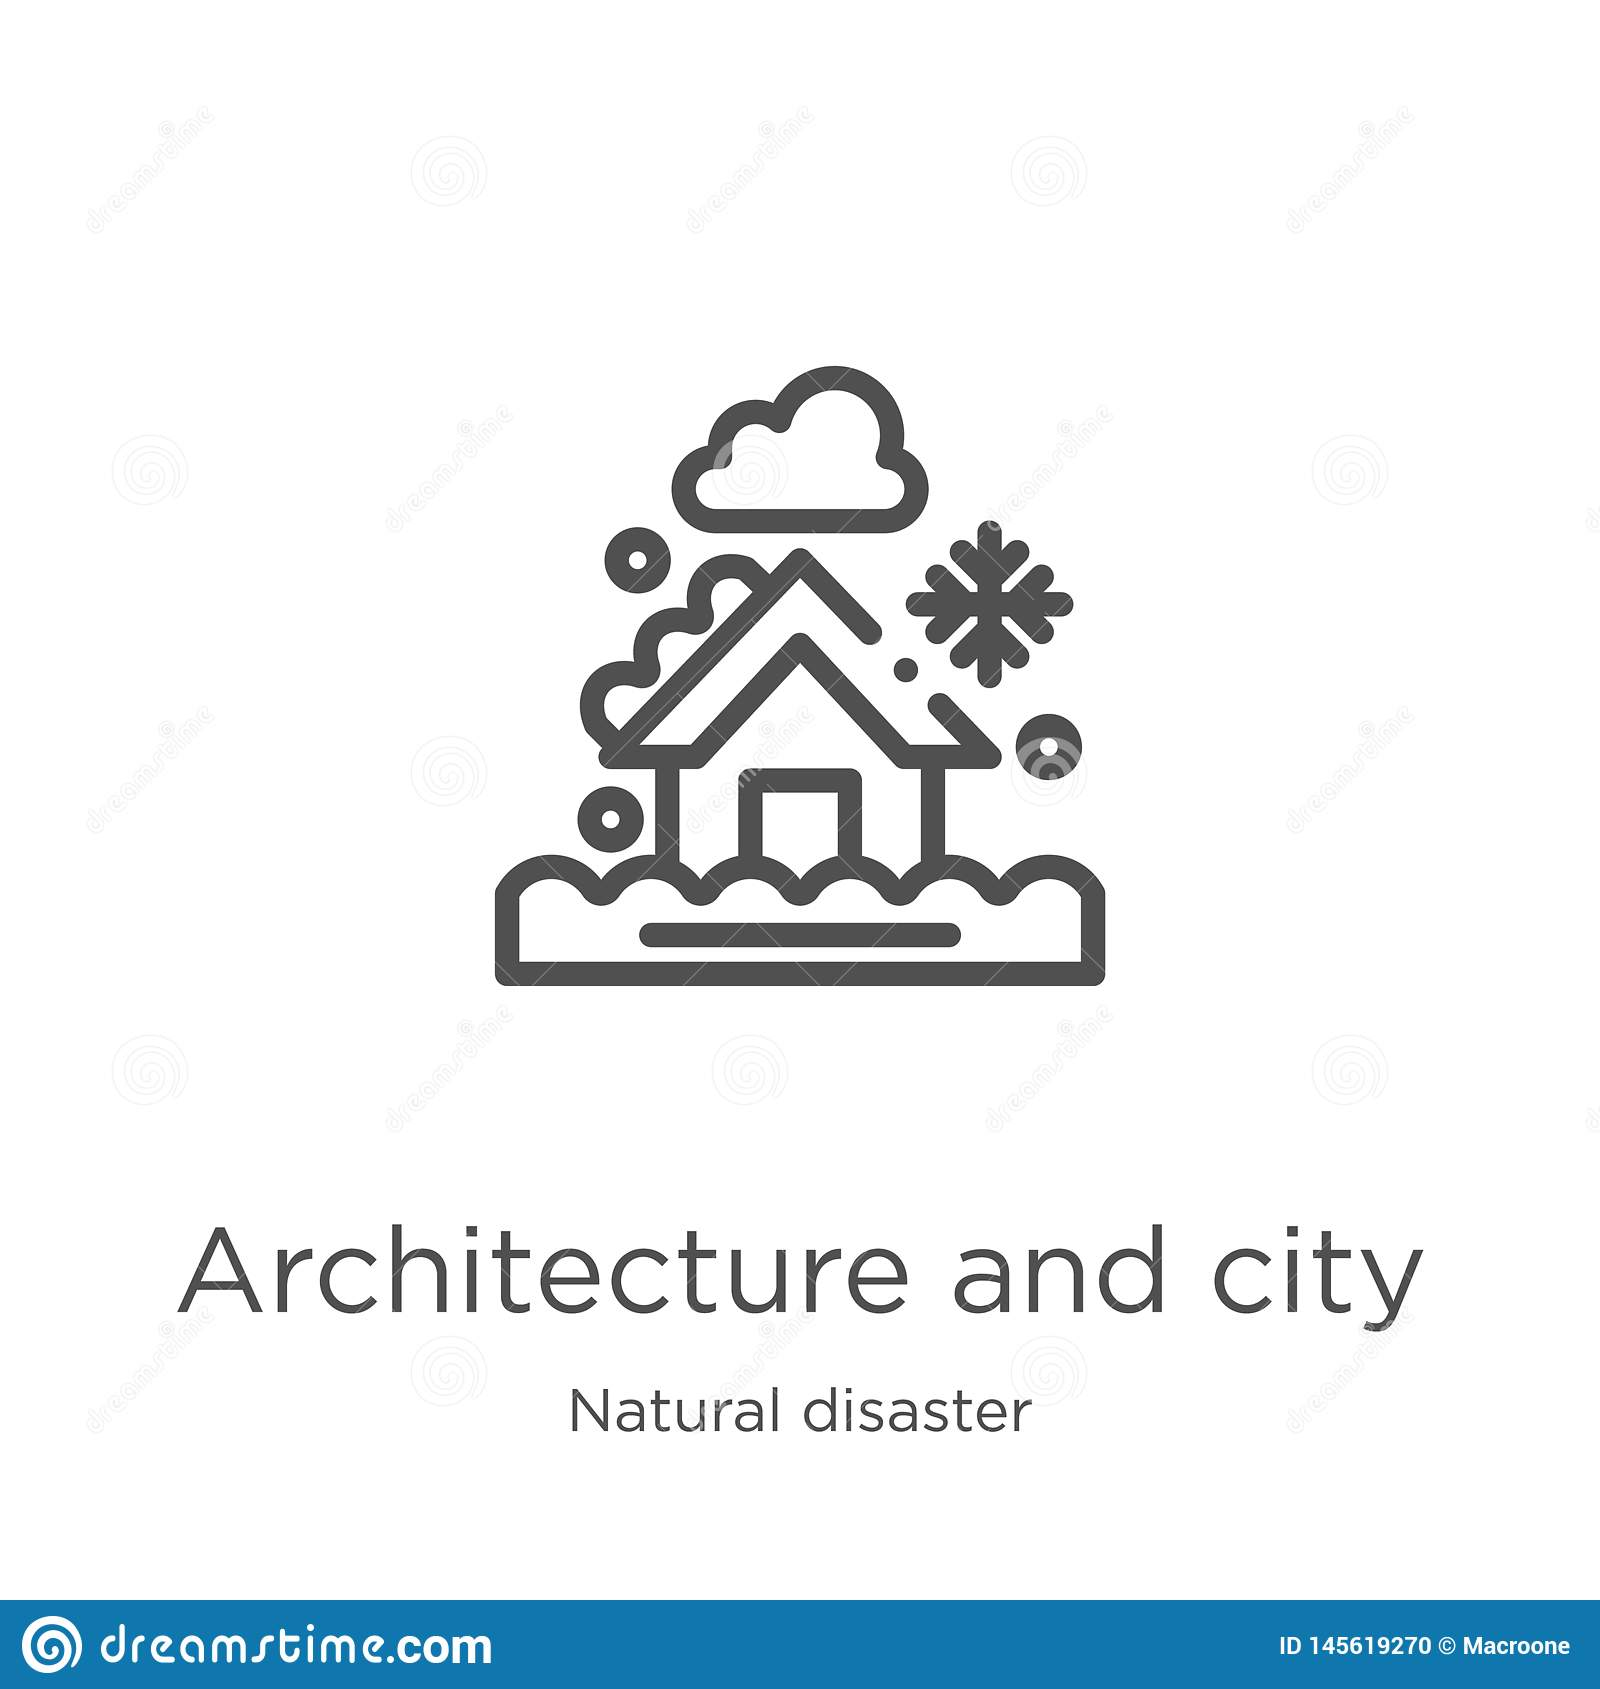 architecture and city icon vector from natural disaster collection. Thin line architecture and city outline icon vector